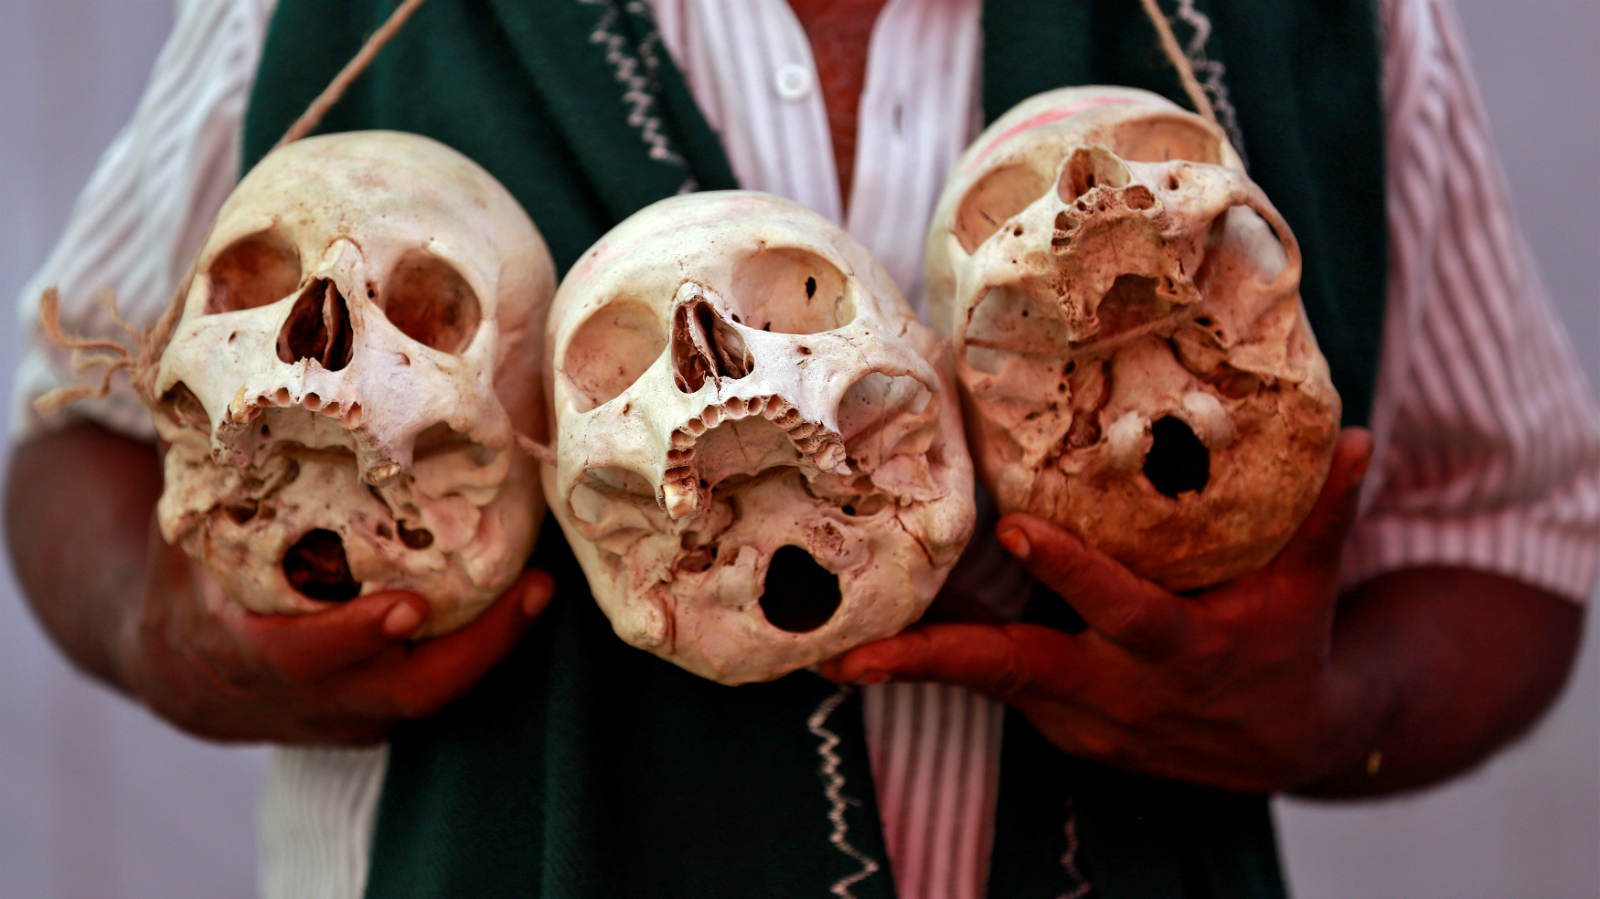 A farmer from the southern state of Tamil Nadu displays skulls, who he claims are the remains of Tamil farmers who have committed suicide, during a protest demanding a drought-relief package from the federal government, in New Delhi, India March 22, 2017.